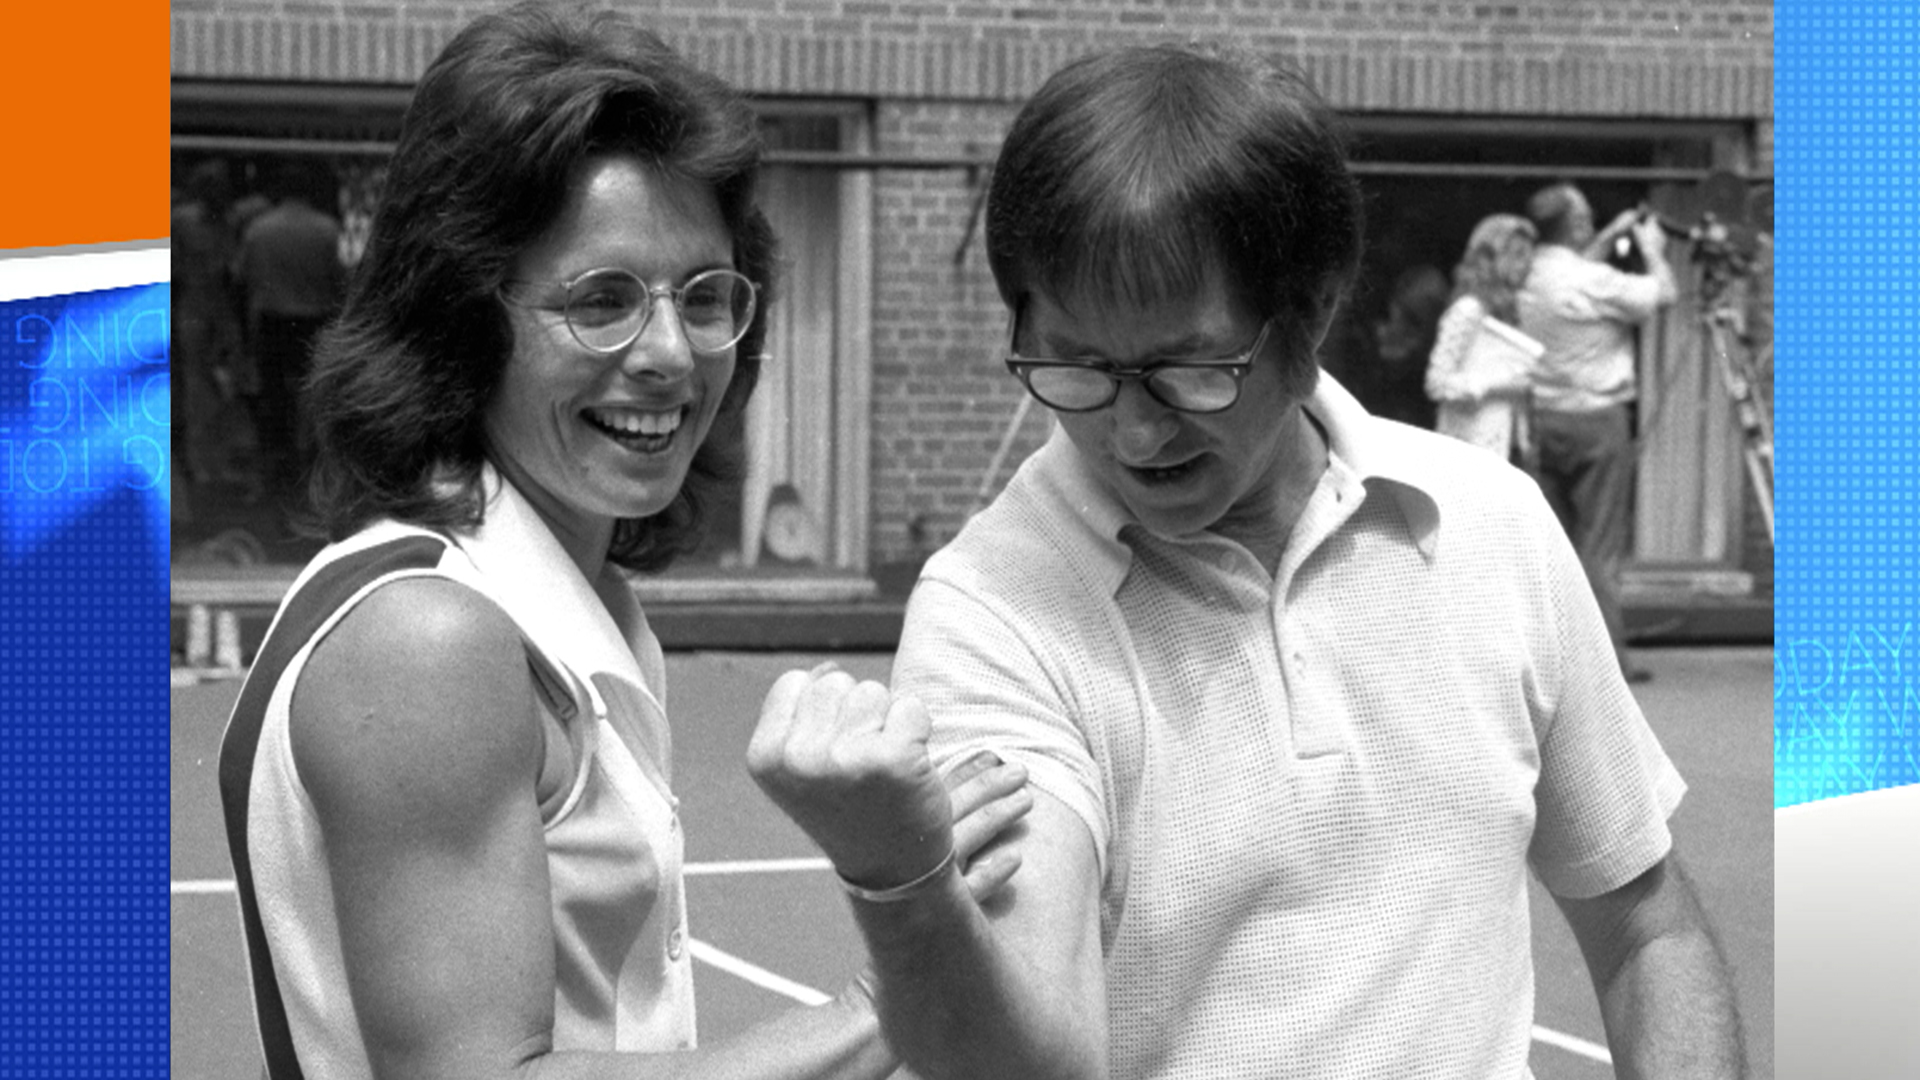 billie jean king vs bobby riggs